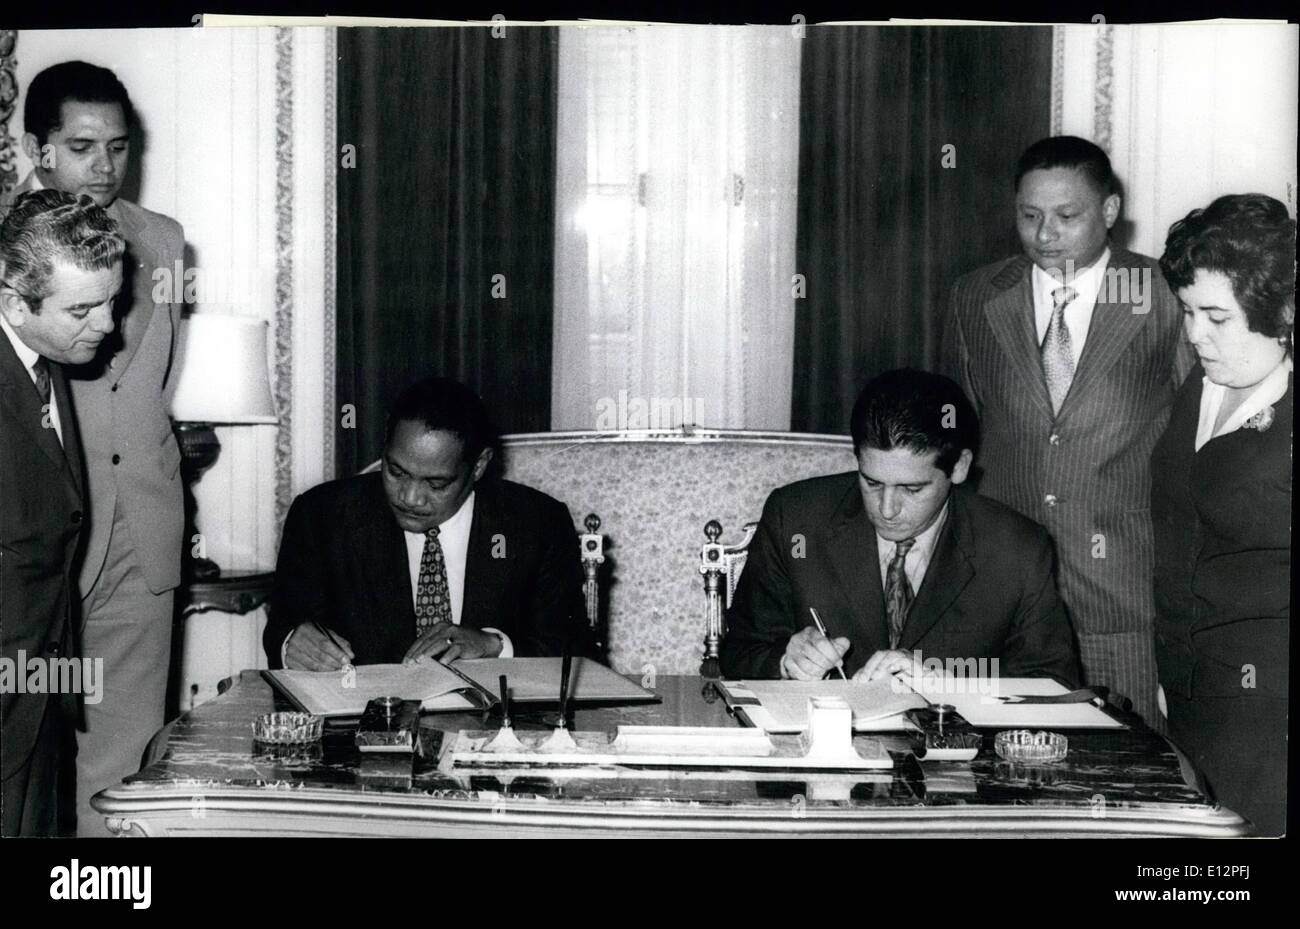 Feb. 24, 2012 - The agreement by which restitution has been made to the Panamanian government of the pirate ships, ''Johnny Express'' and ''Layla Express'', captured in 1971 by the Cuban Revolutionary government was formally signed on December 19 in Cuba's Ministry of Foreign Relations. These ships were used by the U.S. CIA to perpetrate armed actions and to infiltrate agents into Cuban territory, without the knowledge of the Panamanian government, under whose flag they effected their operations - Stock Image